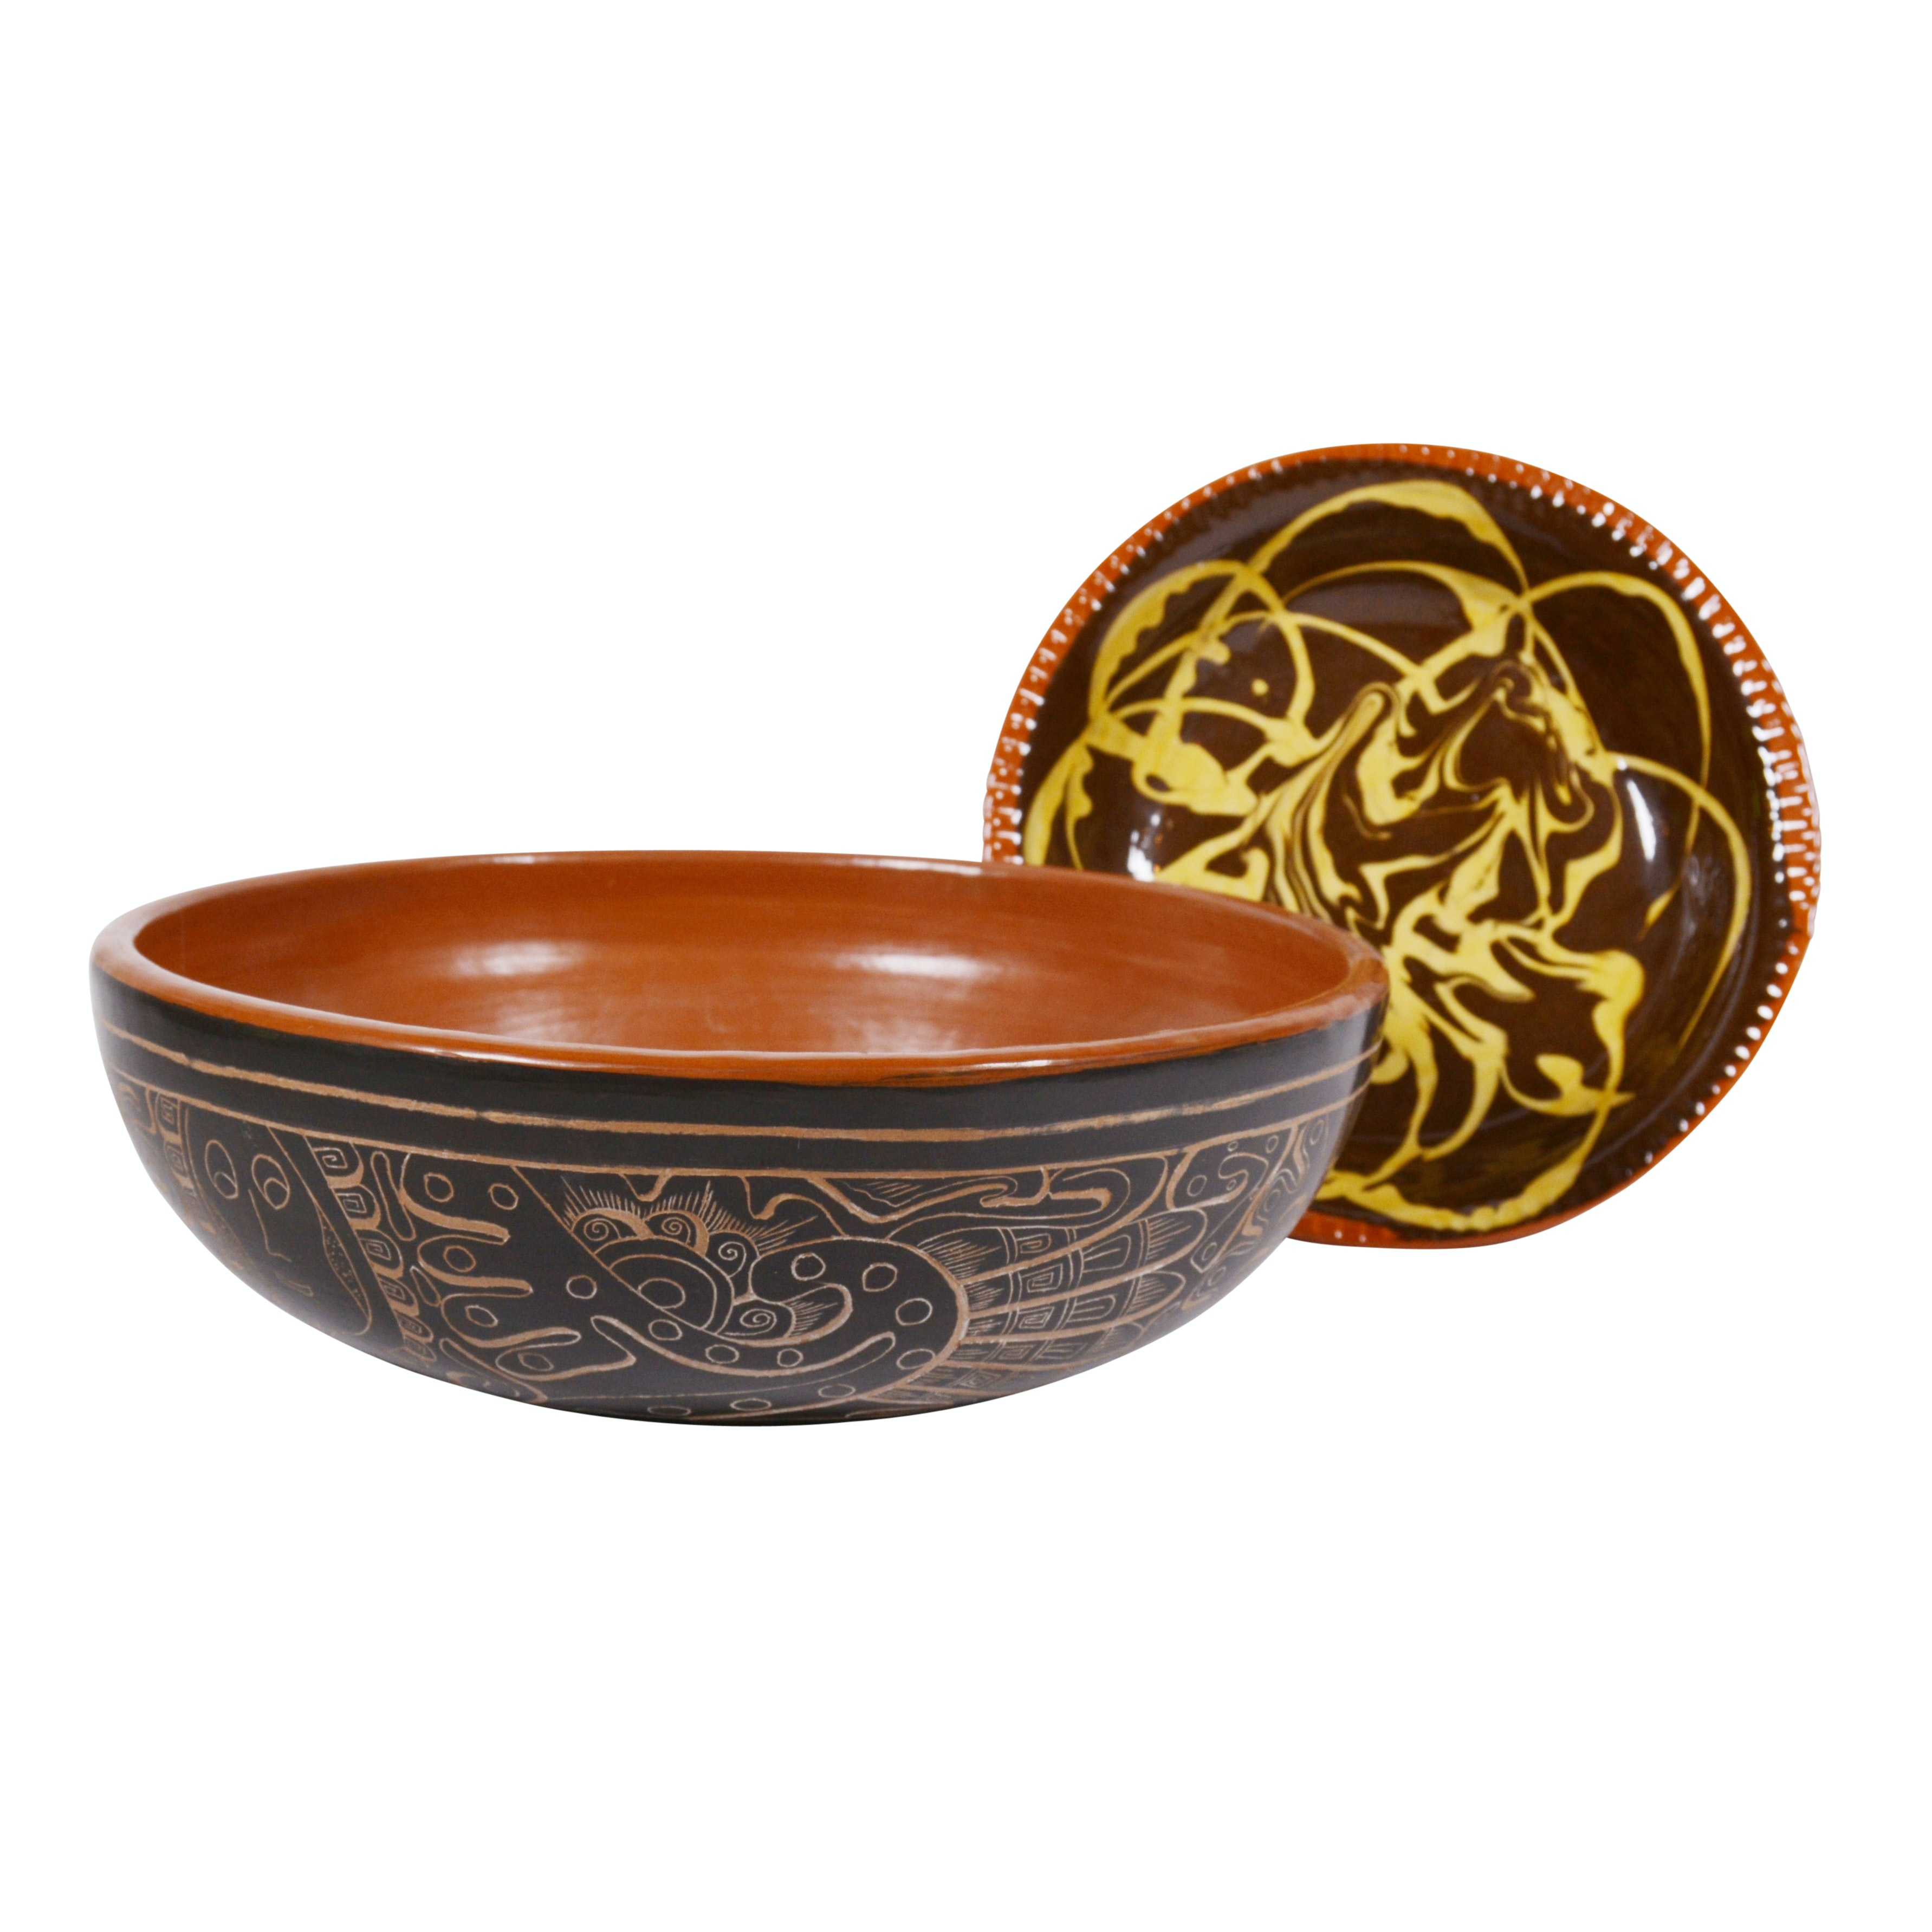 Nicaraguan Sgraffito Earthenware Bowl with Redware Plate